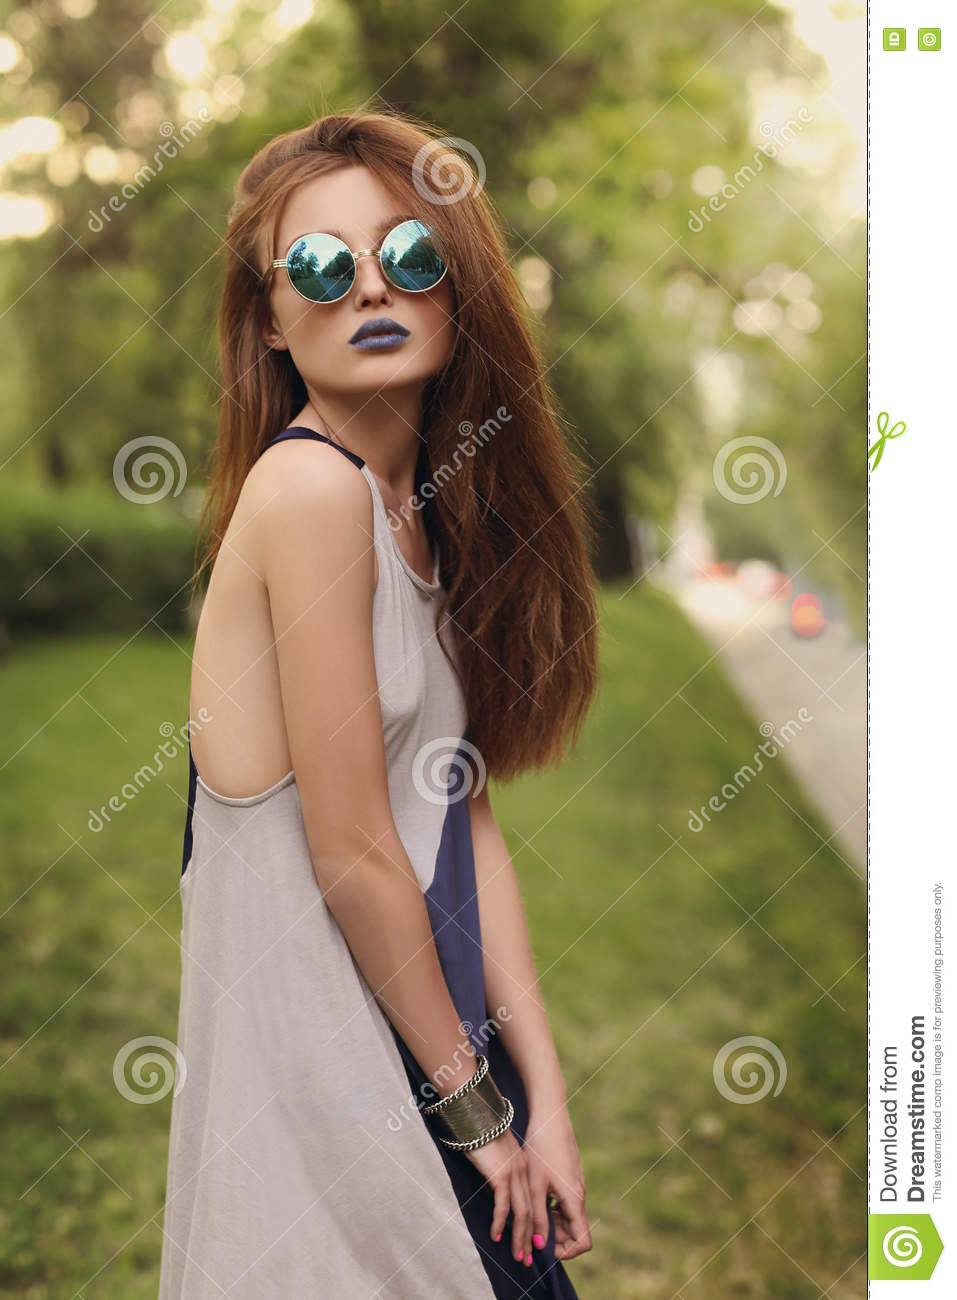 Lovely brunette girl with blue lips in round sunglasses